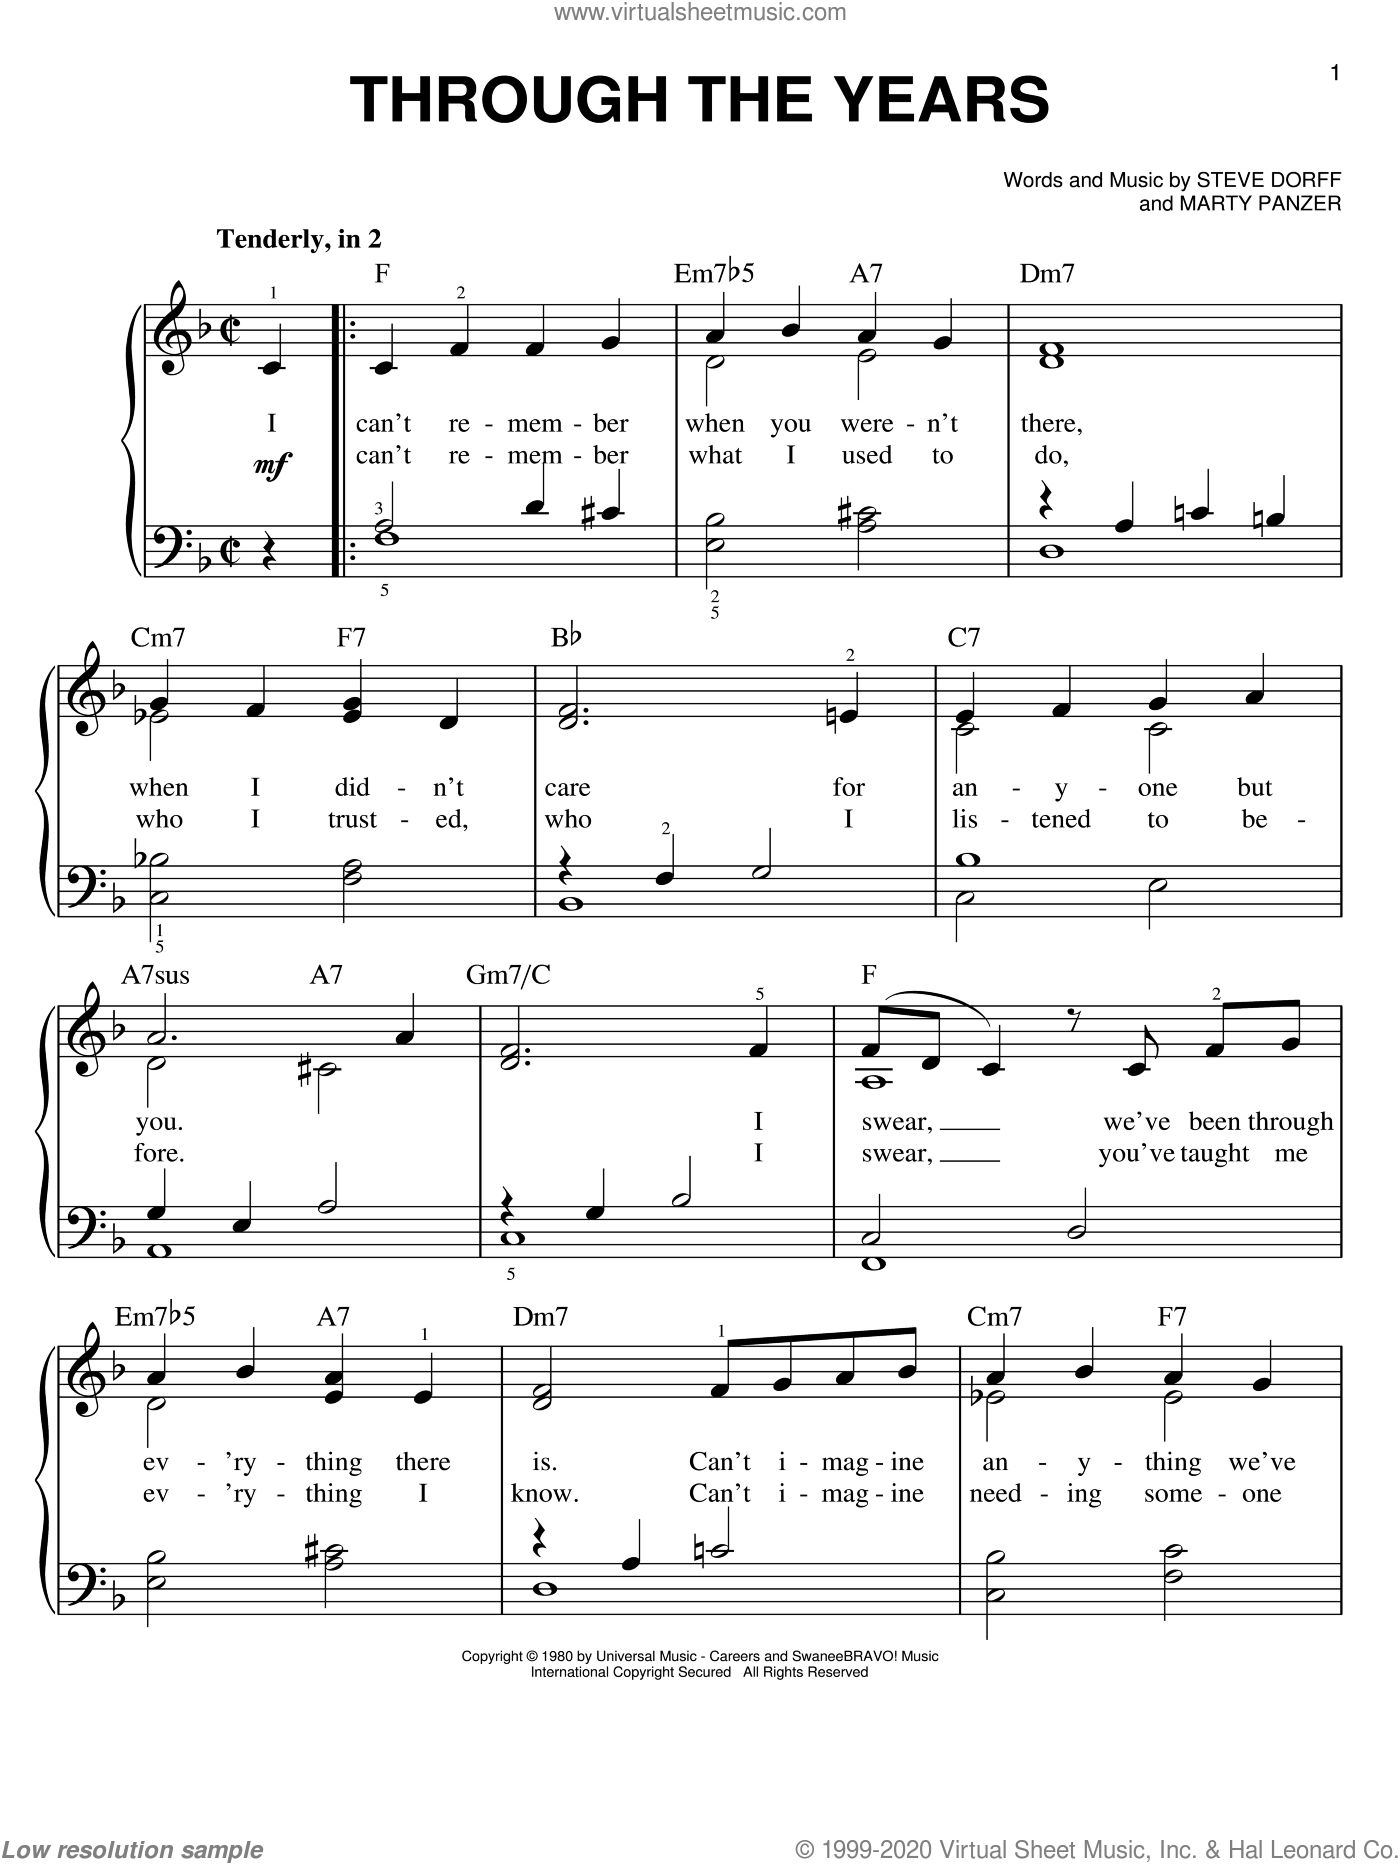 Through The Years sheet music for piano solo by Kenny Rogers, Marty Panzer and Steve Dorff, wedding score, easy. Score Image Preview.